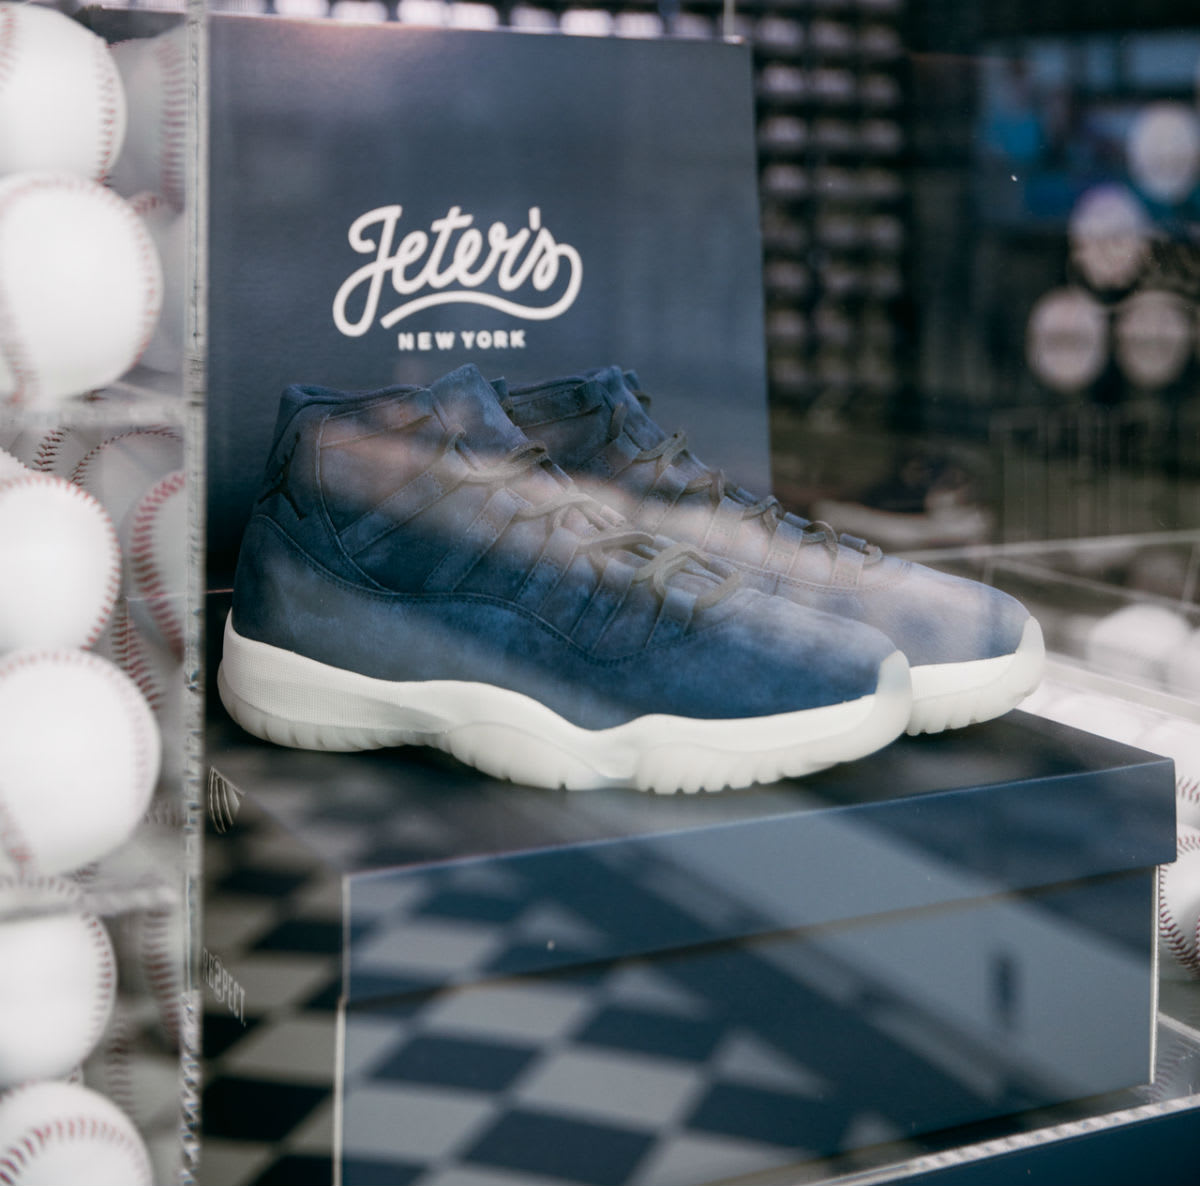 Jordan Derek Jeter Pop-Up (6)